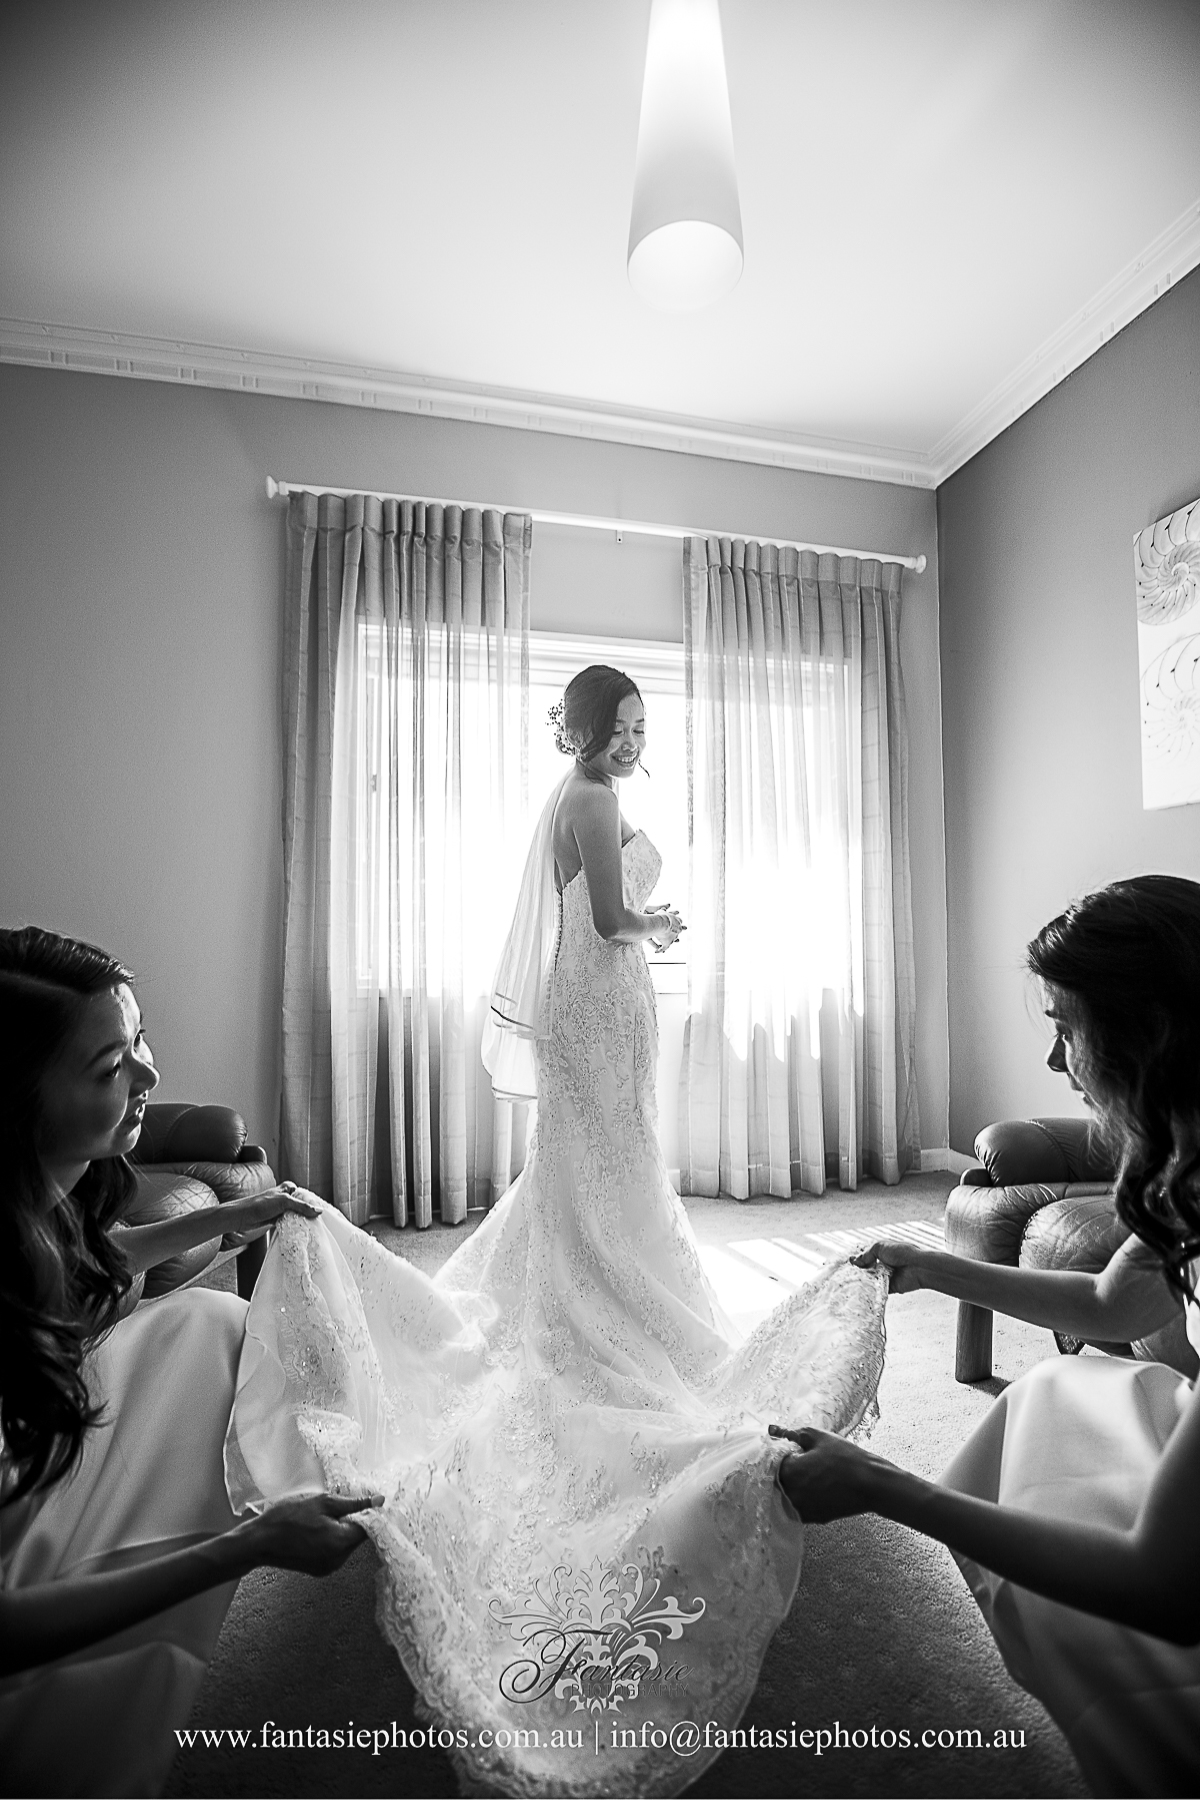 Wedding Photography at Terrigal Central Coast | Fantasie Photography